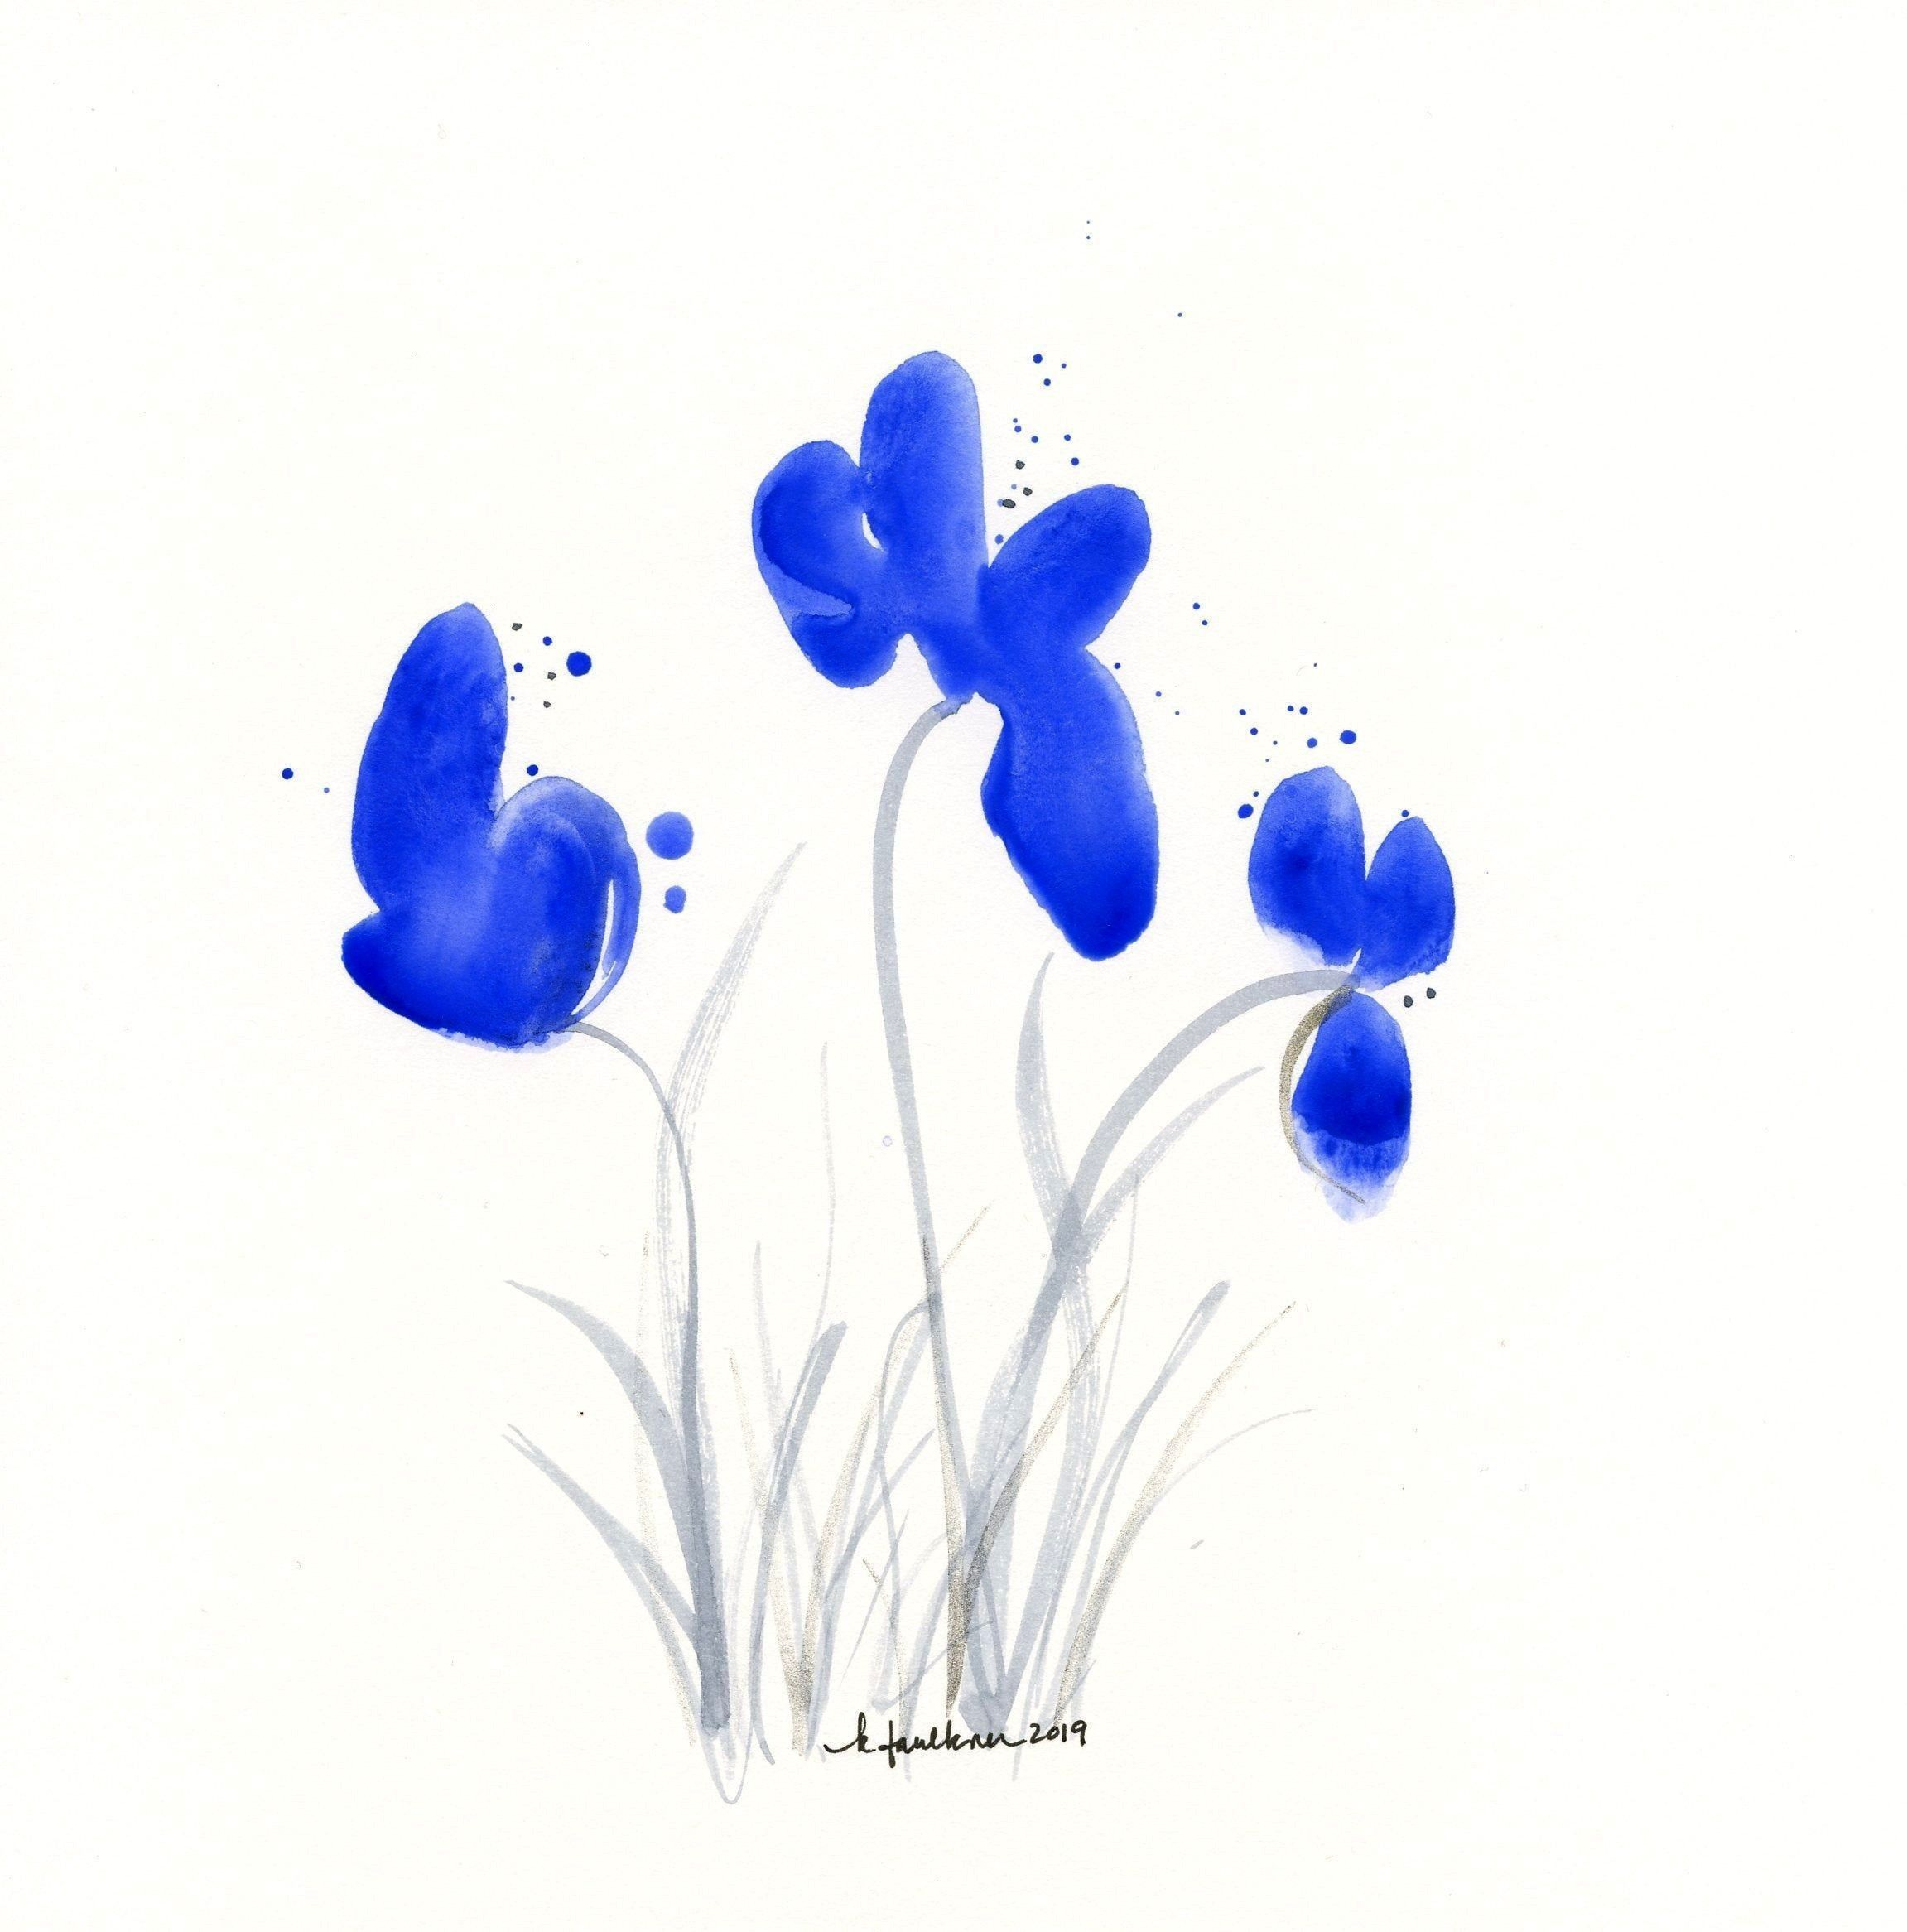 of the Year 2020 Classic Blue watercolor flower paintingblueColor of the Year 2020 Classic Blue watercolor flower paintingblue Image may contain people standing Abstract...